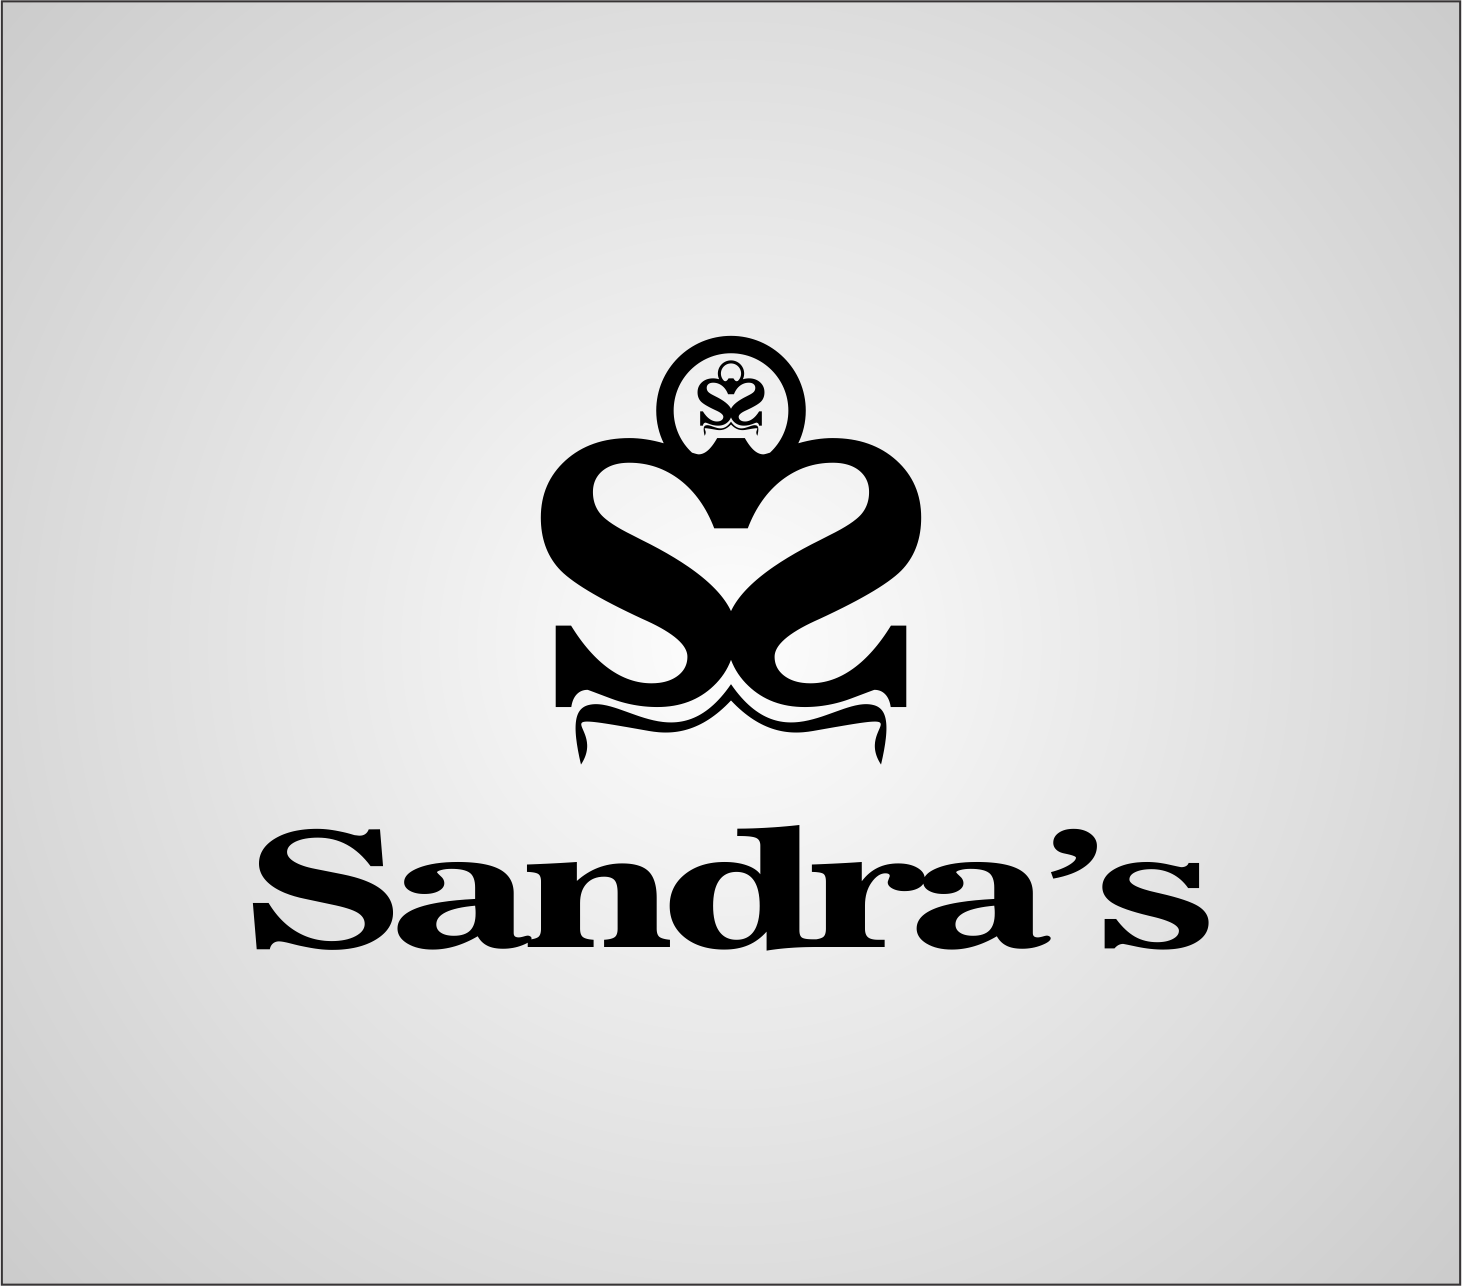 Logo Design by Agus Martoyo - Entry No. 27 in the Logo Design Contest Imaginative Logo Design for Sandra's.